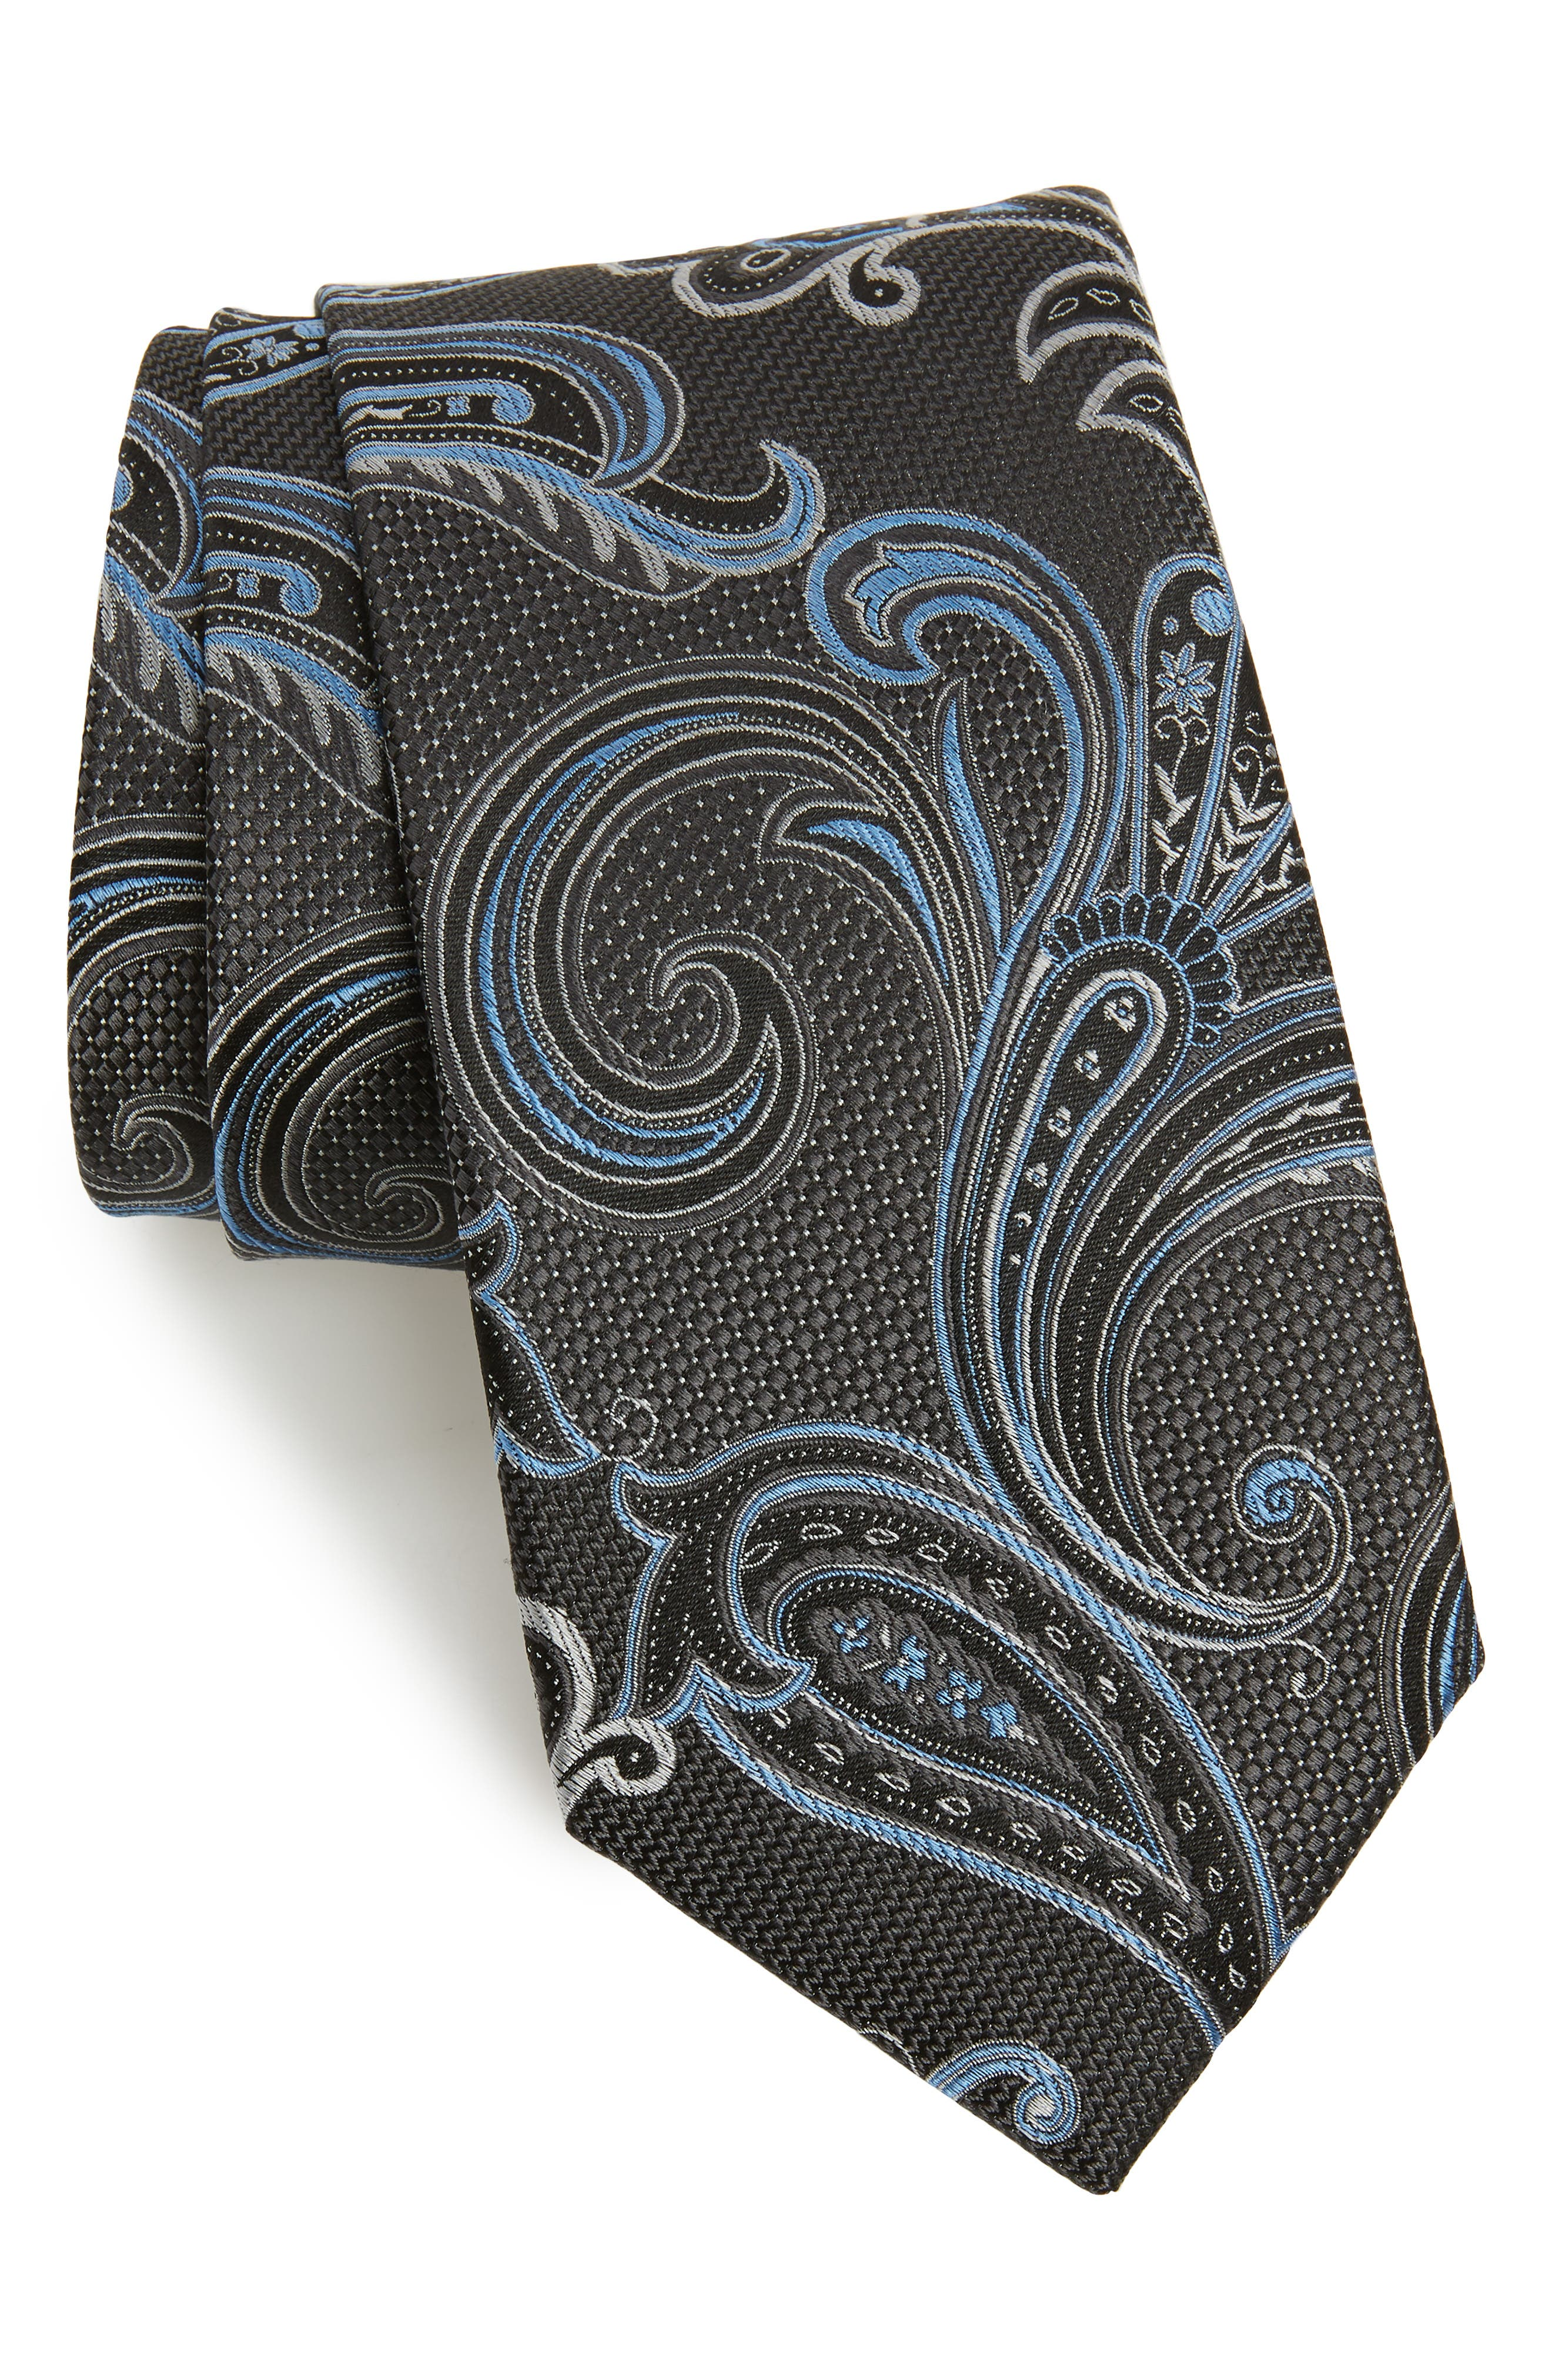 NORDSTROM MEN'S SHOP, Bryce Paisley Silk X-Long Tie, Main thumbnail 1, color, CHARCOAL